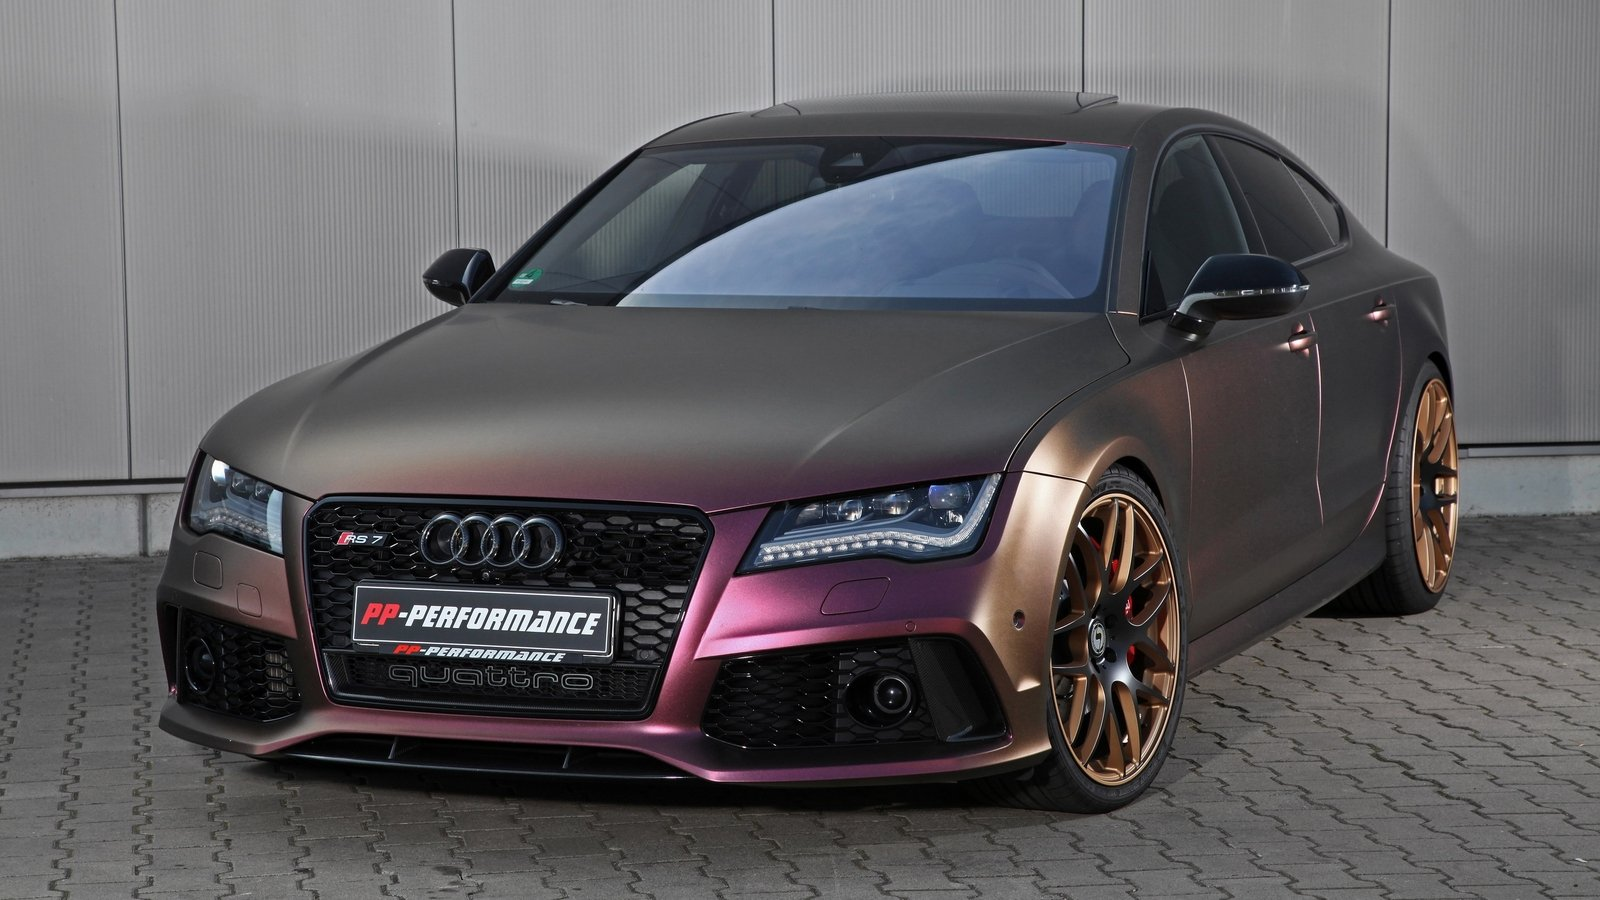 2016 Audi Rs7 By Pp Performance Review Top Speed